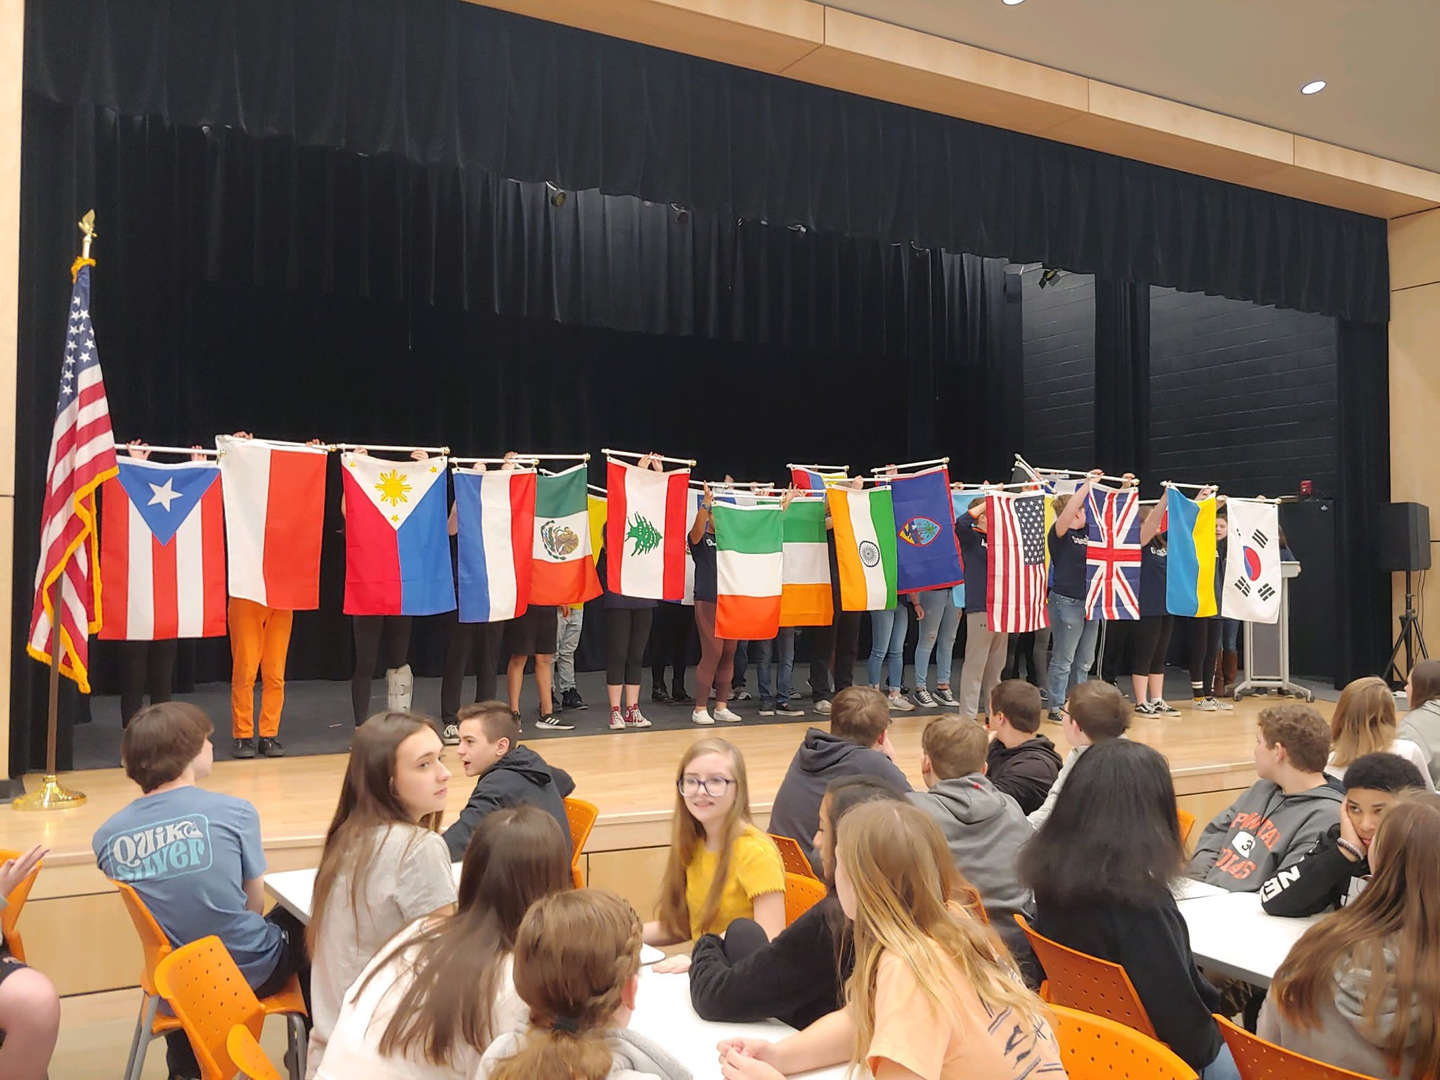 Flags representing student nationalities